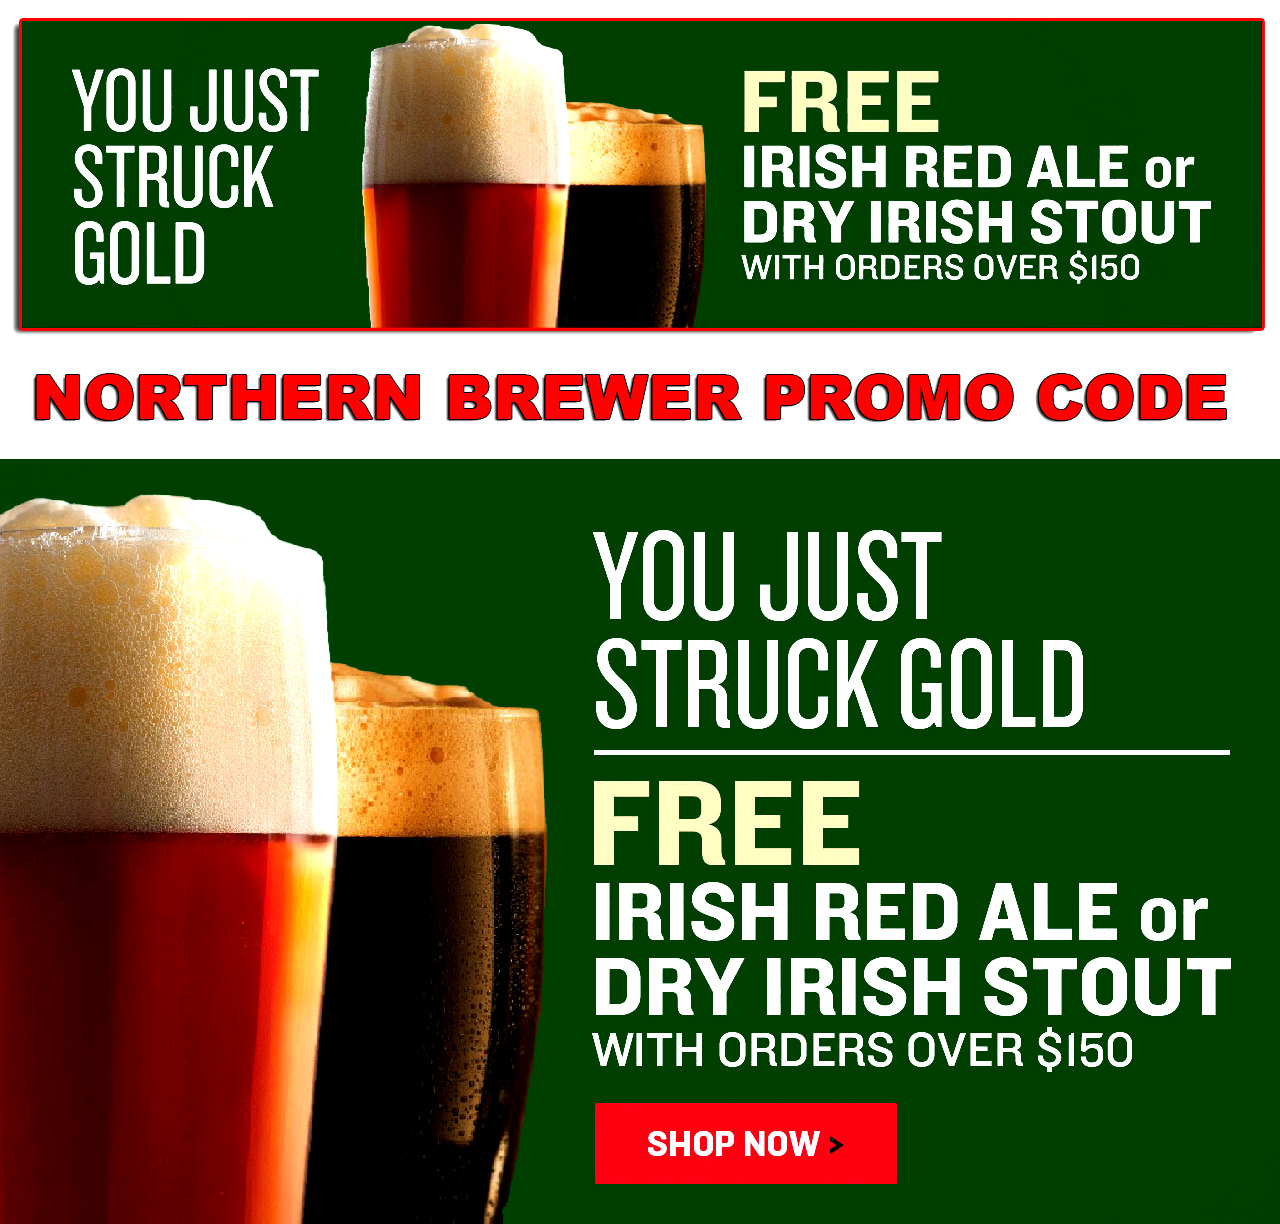 Northern Brewer Get a Free Irish Ale or Irish Stout Beer Kit With This Northern Brewer Promo Code Coupon Code